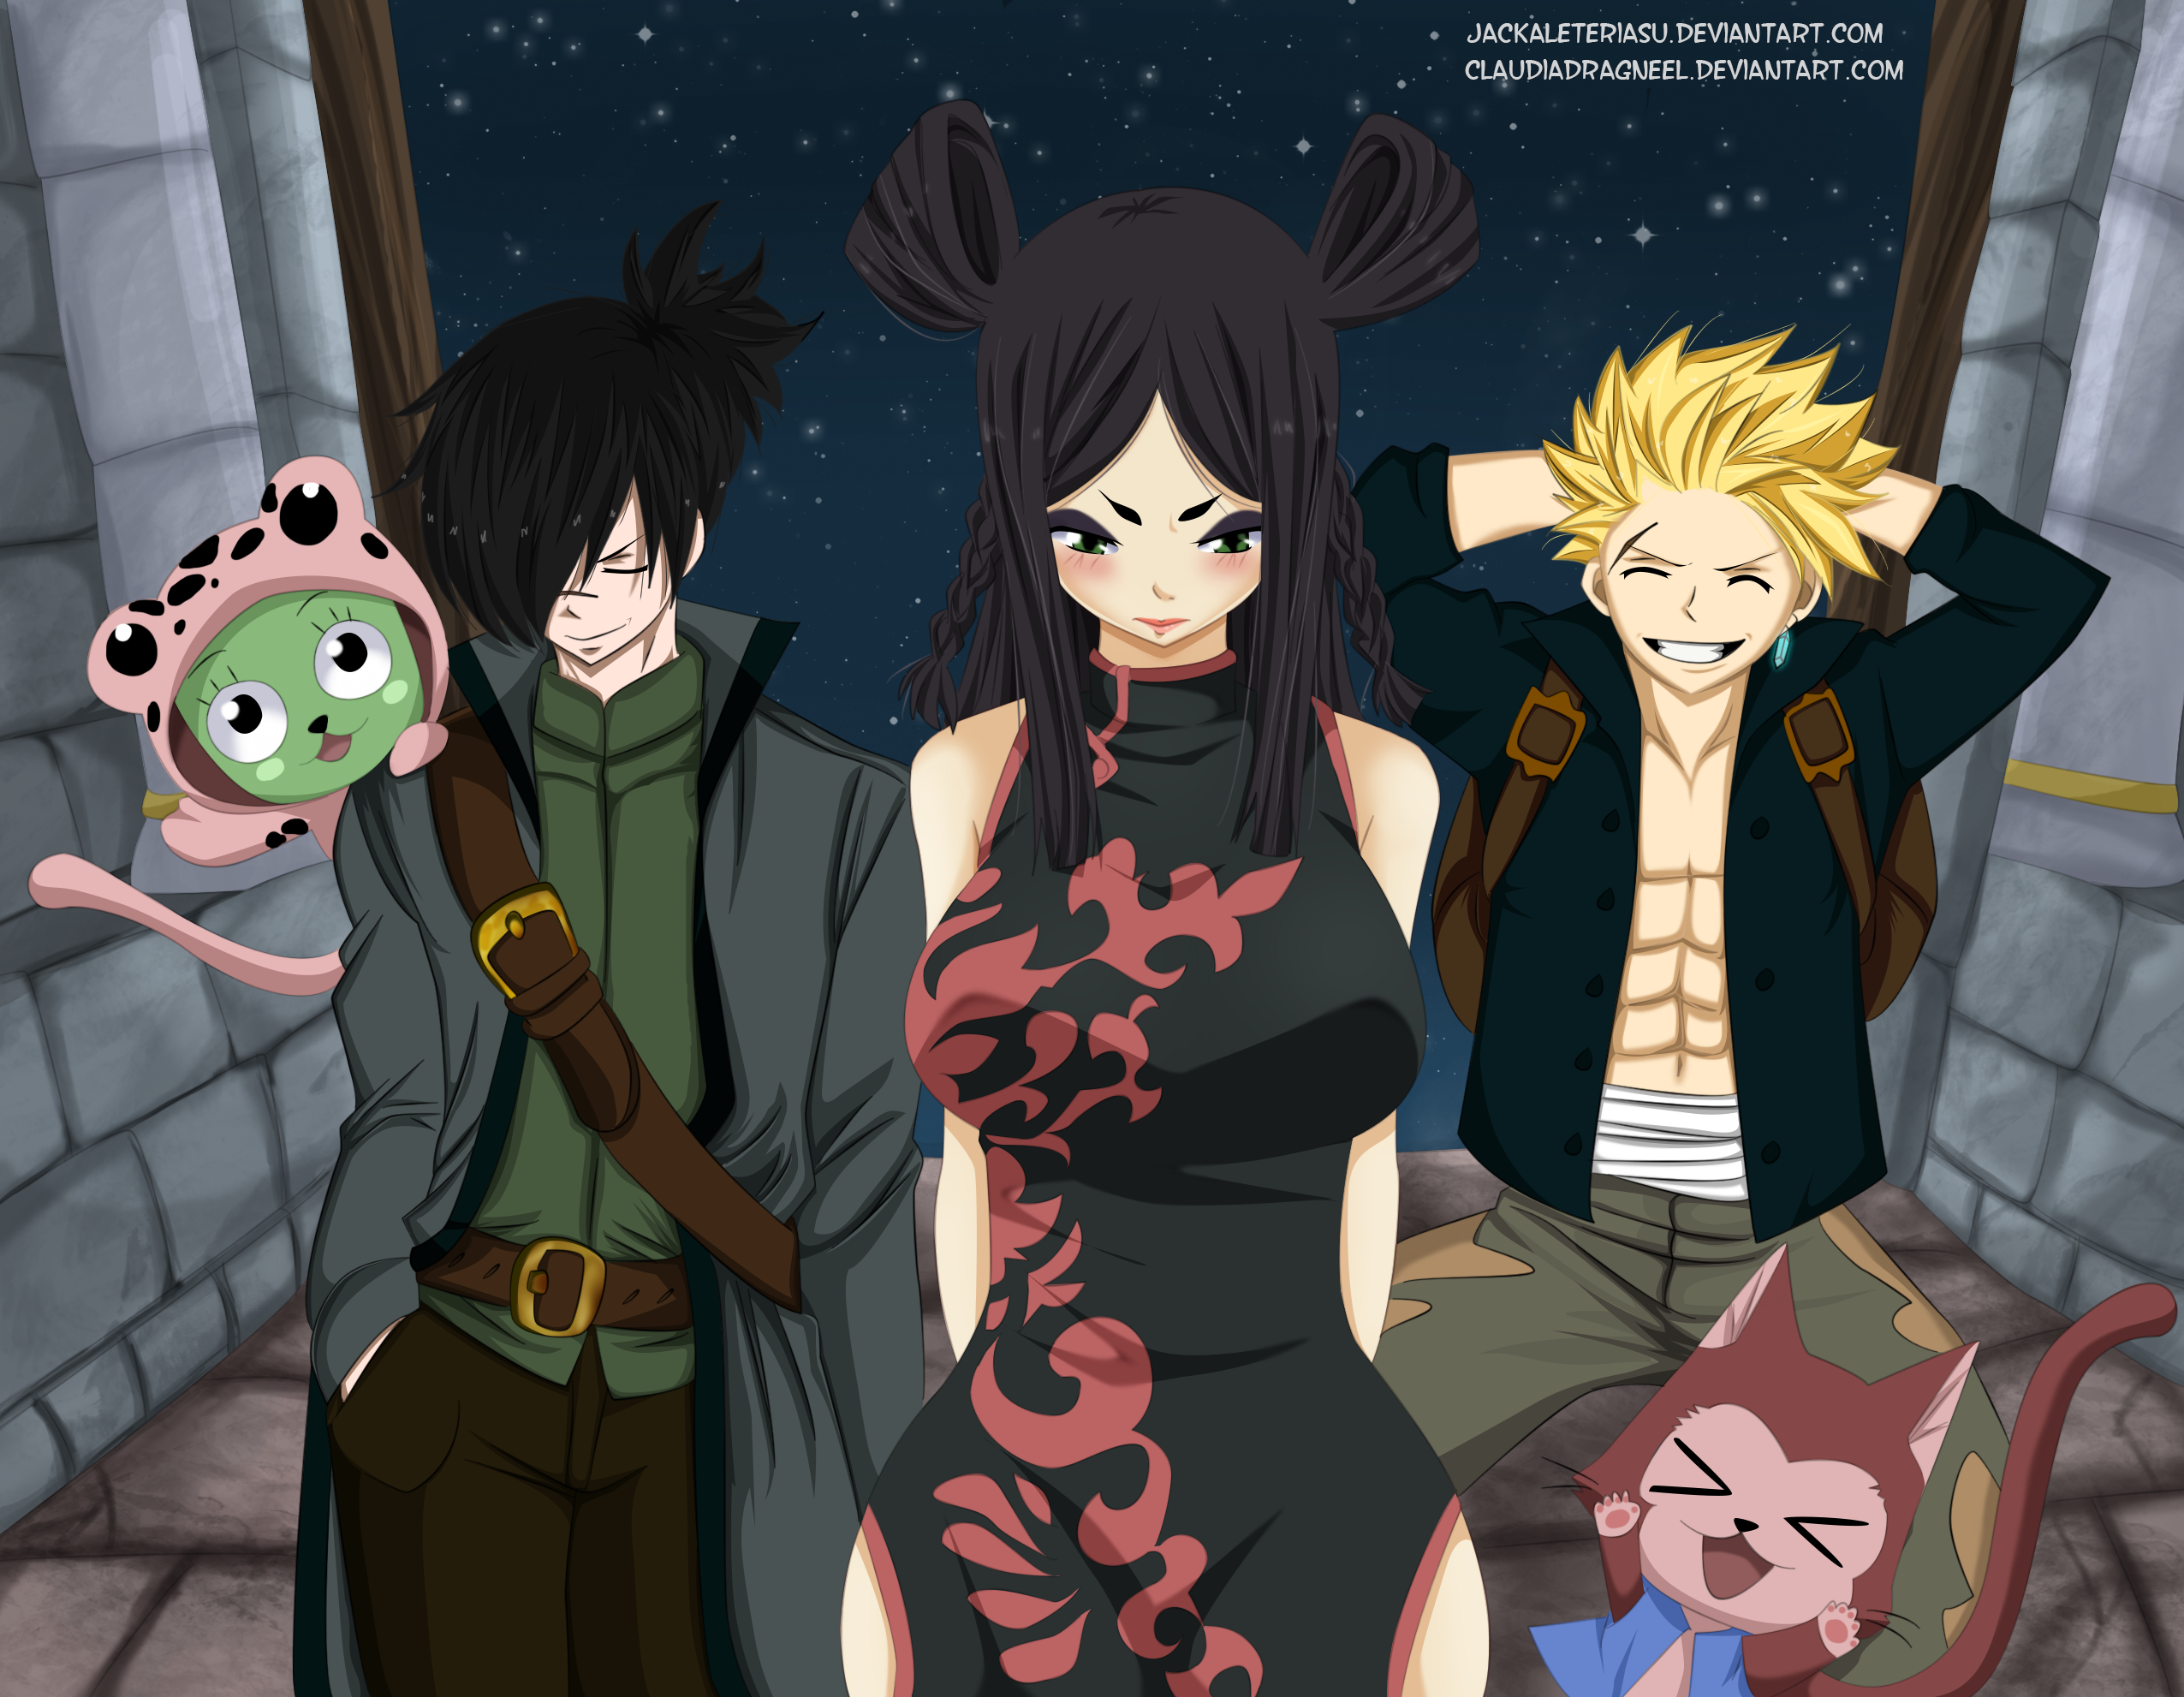 fairy tail 416 minerva sting and rogue collab by jackaleteriasu on deviantart